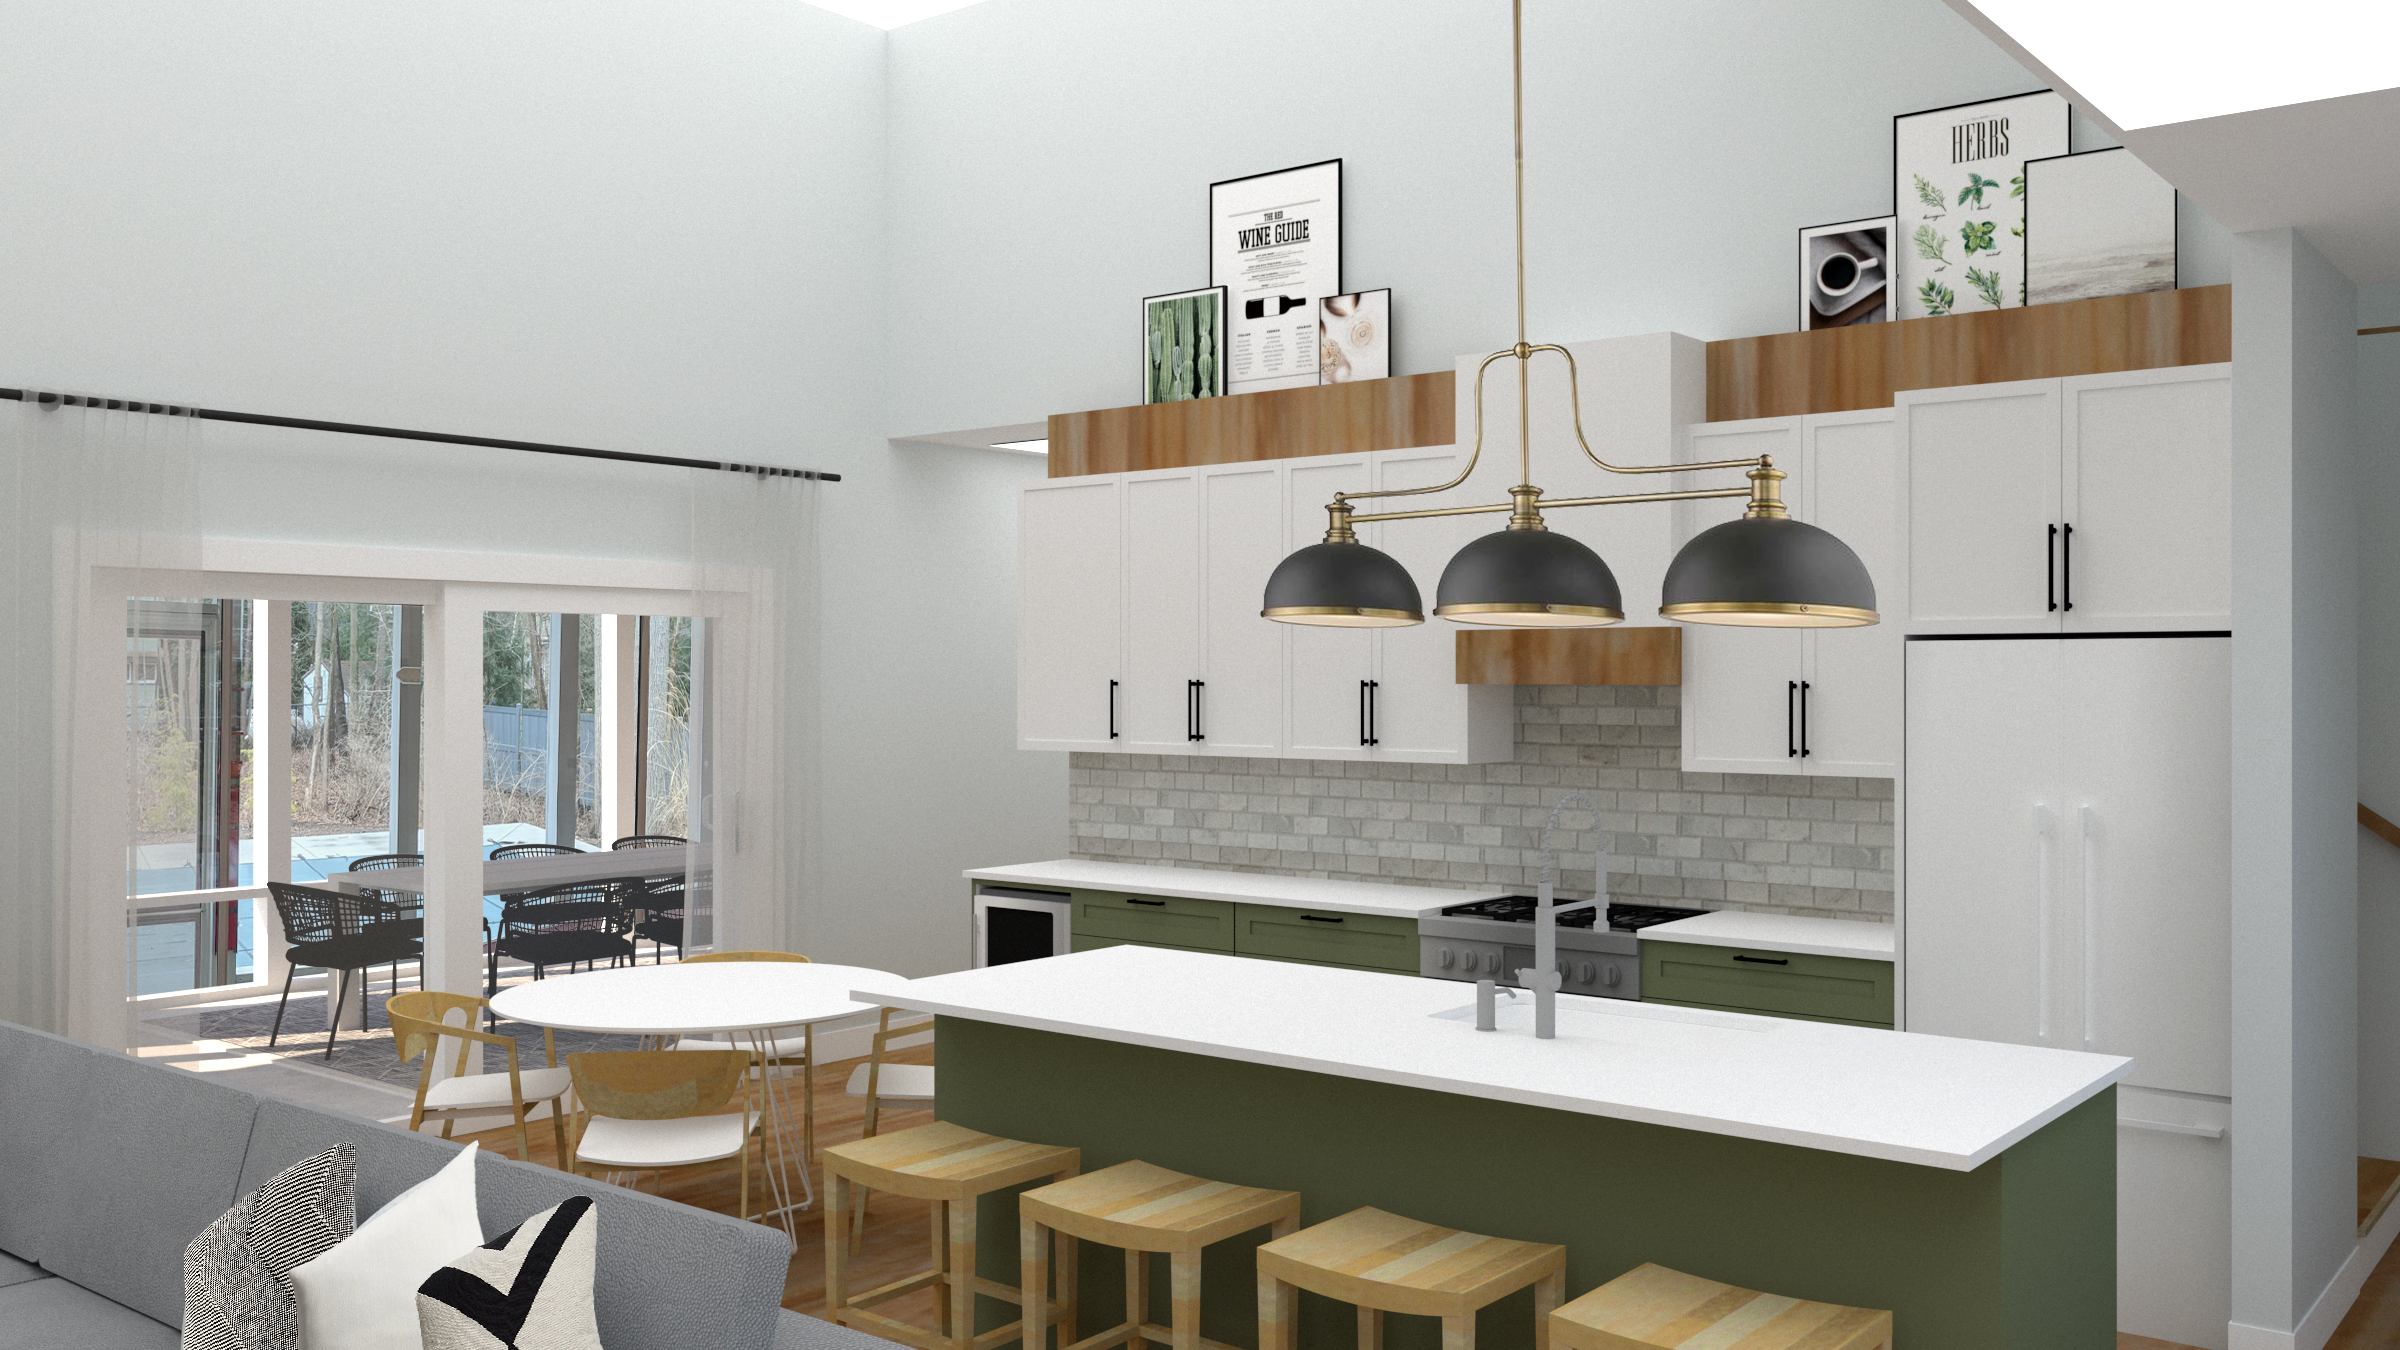 Green accents and warm pops of wood were introduced to bring the kitchen to life!